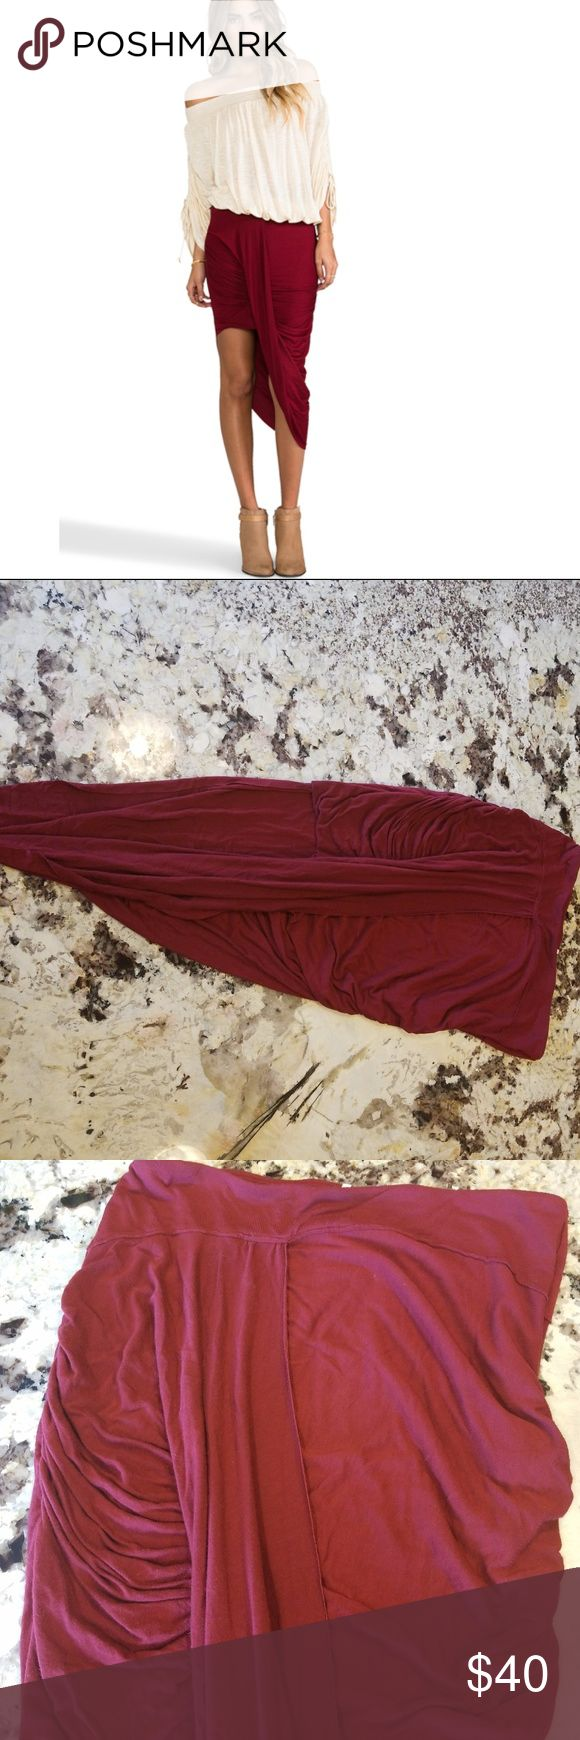 """Free People Love Twist and Shout Sarong Wrap Skirt Free People Love Twist and Shout Sarong Wrap Draped Boho Skirt Red Size Medium  No rips, stains, smoke free home. Hip to hip: 15"""" Length of skirt: 19"""" Free People Skirts Mini"""